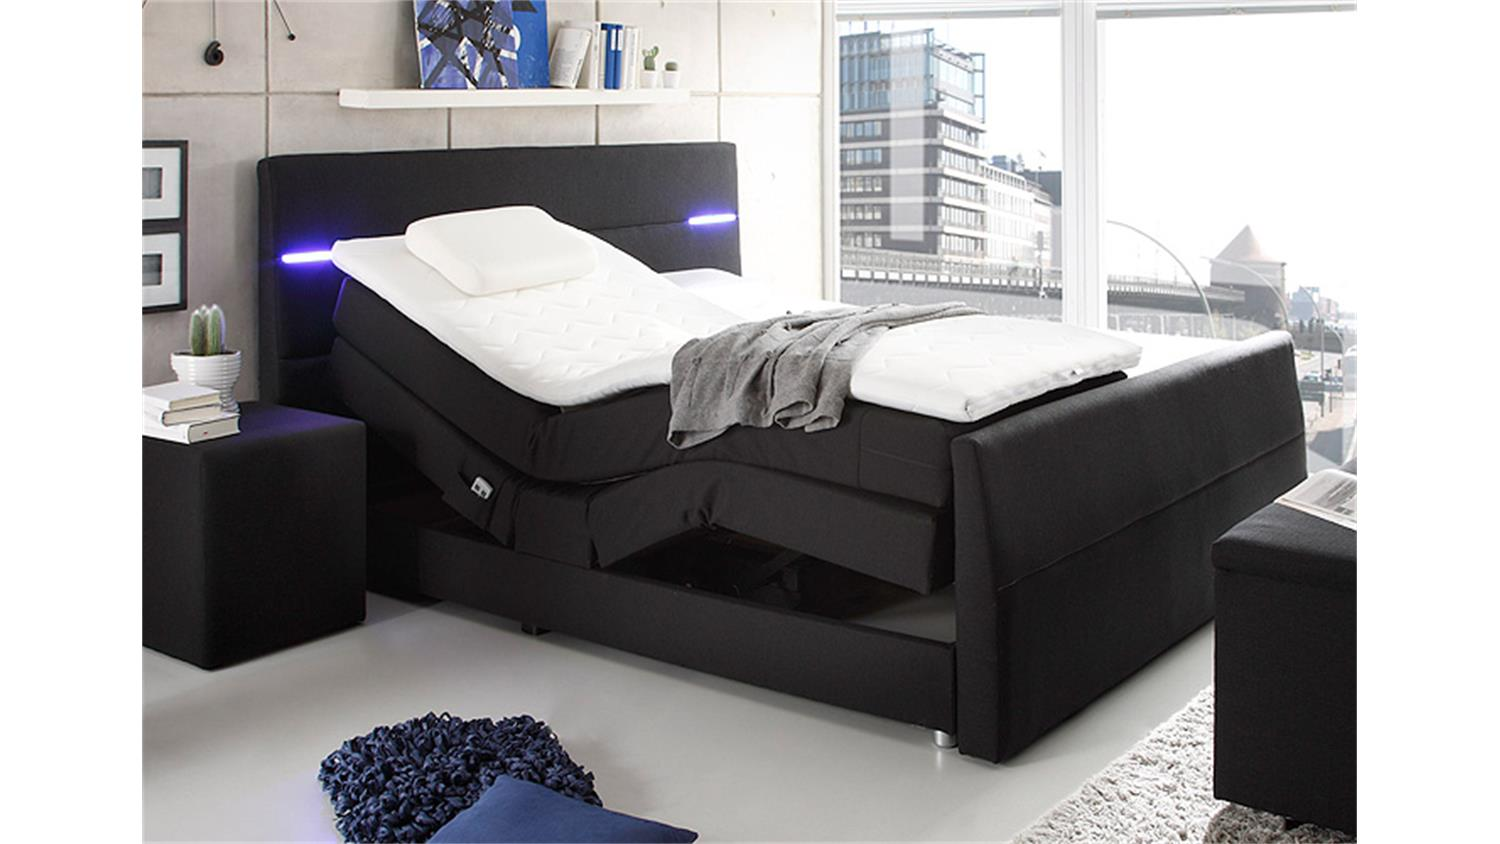 test boxspringbett ikea boxspringbett test ikea haus ideen boxspringbett ikea test. Black Bedroom Furniture Sets. Home Design Ideas